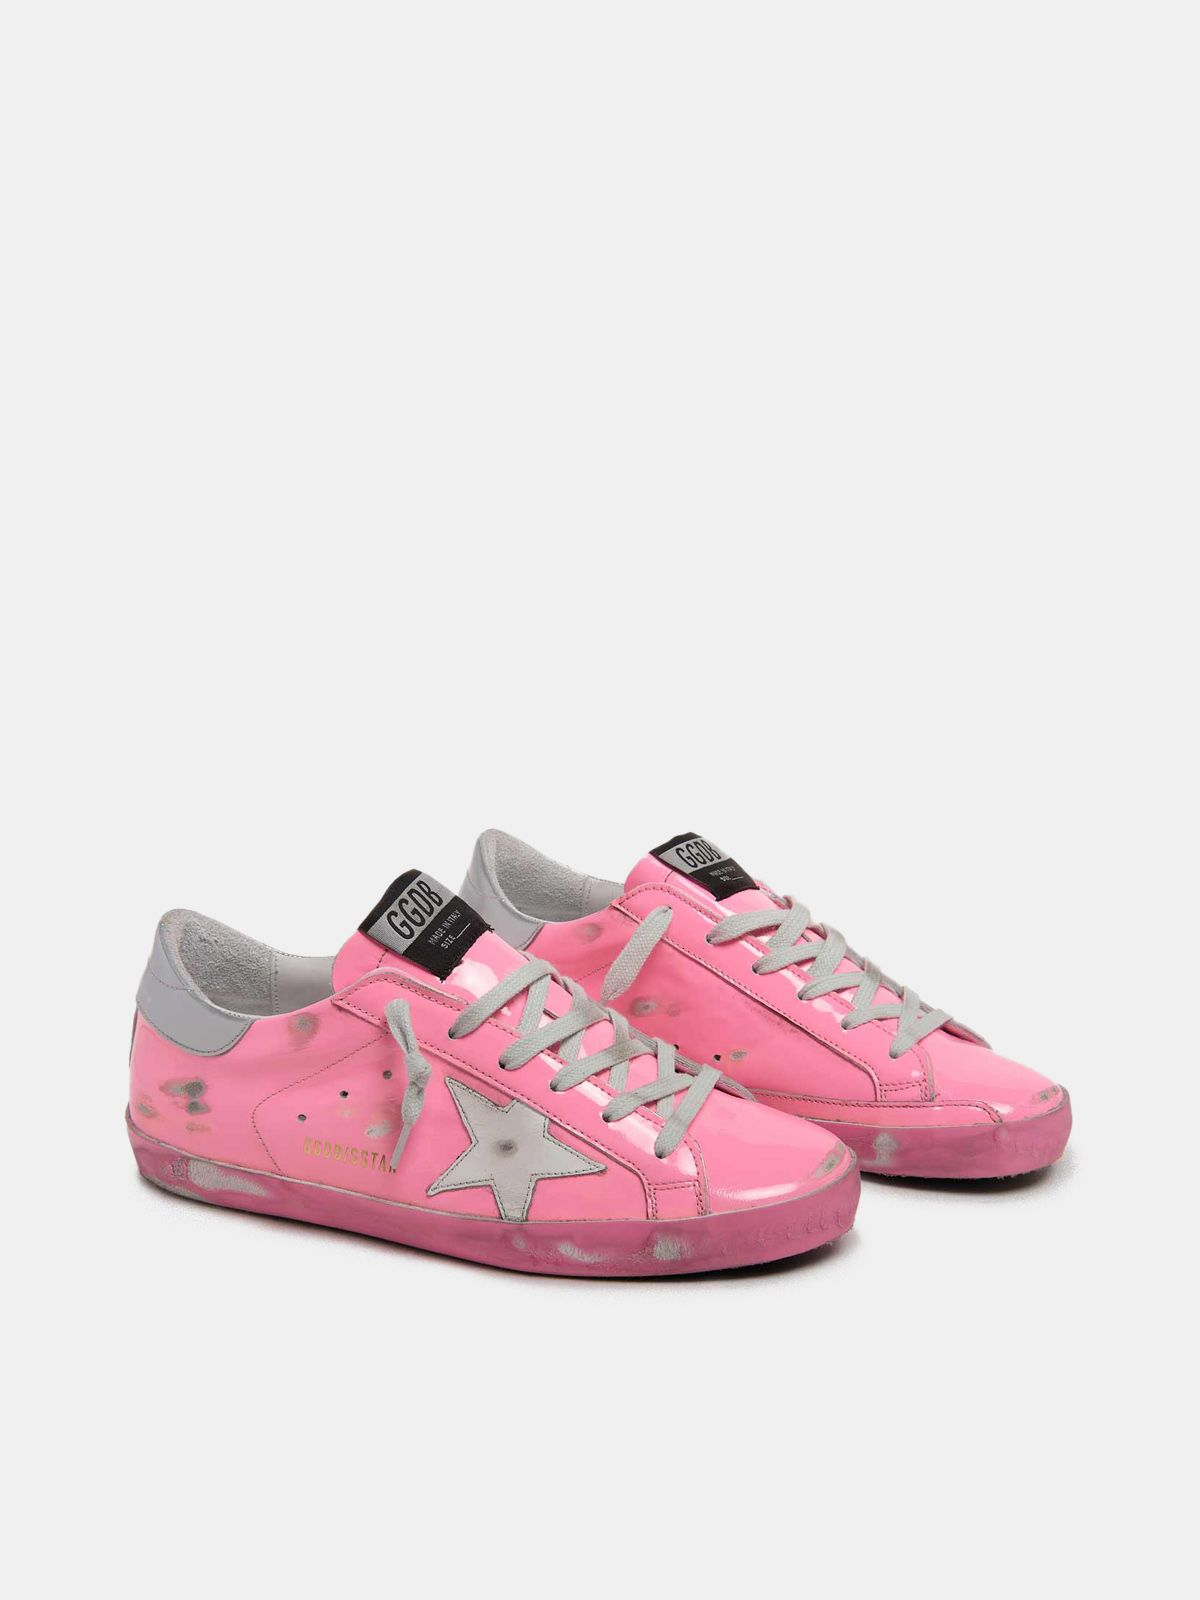 Golden Goose - Sneakers Super-Star rosa con talloncino argento in